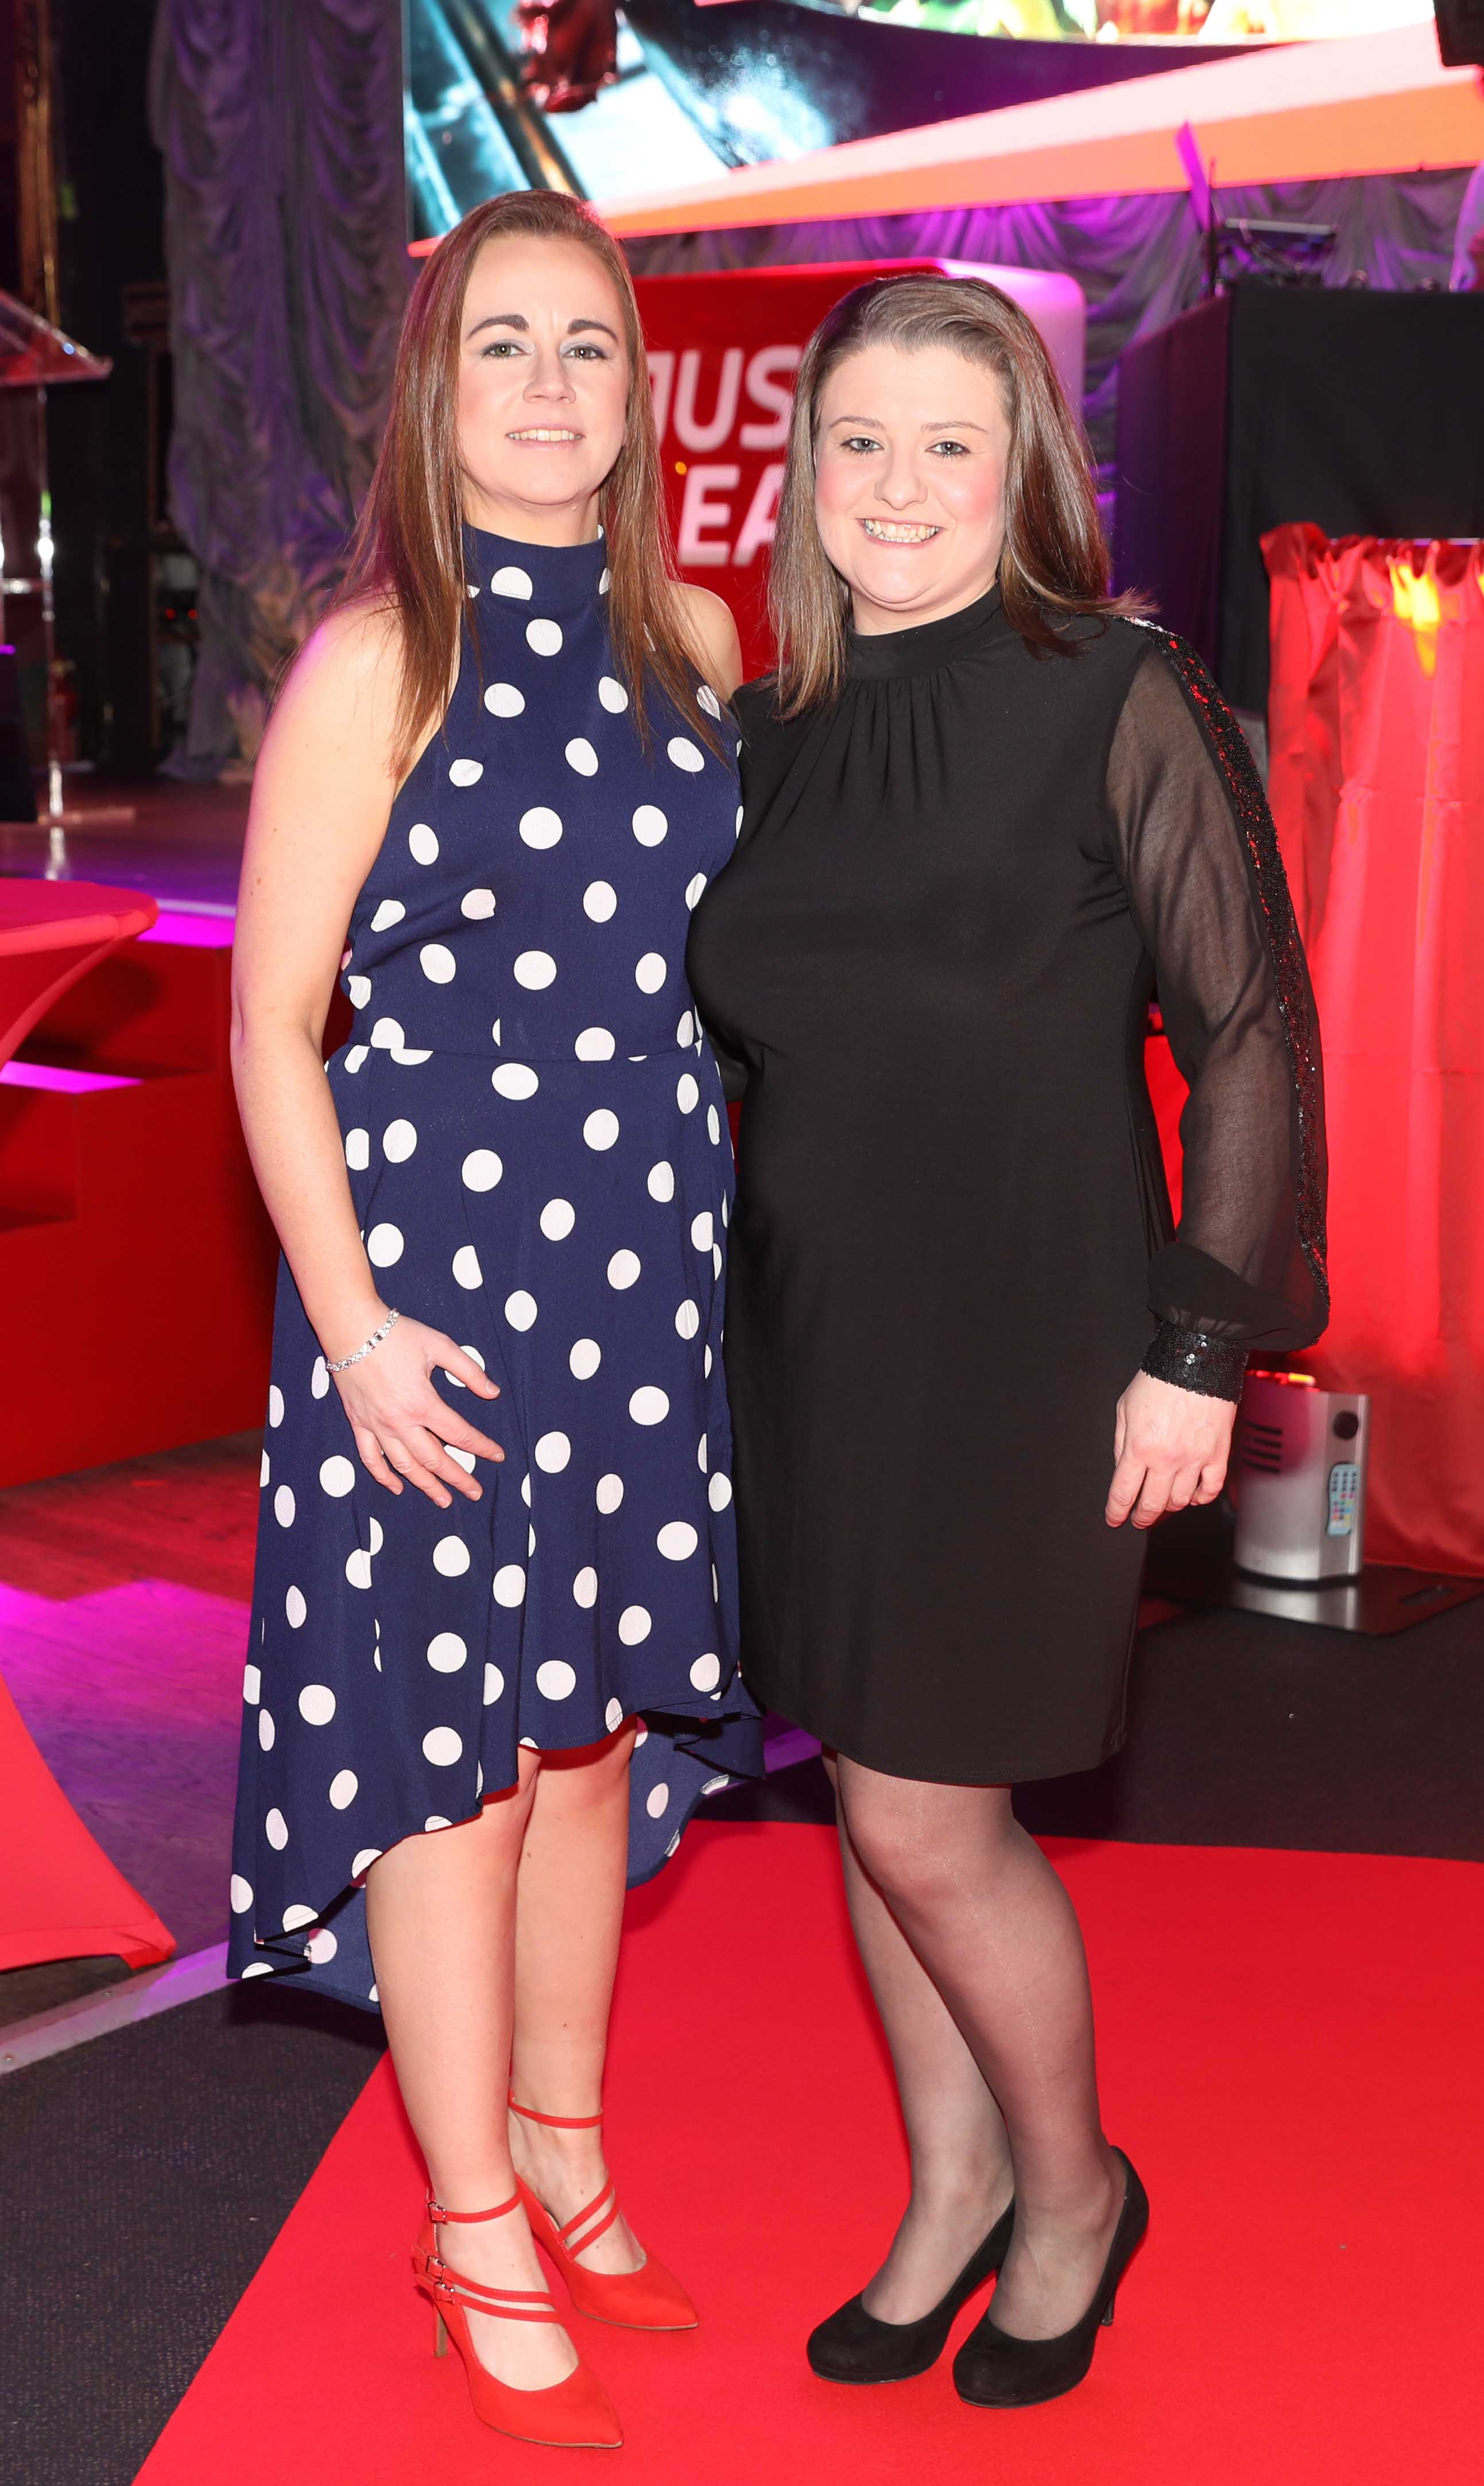 Pictured last night were Claire McGinley and Ciara Scalici at the sixth annual Just Eat National Takeaway Awards in Dublin's Twenty Two. Photograph: Leon Farrell / Photocall Ireland